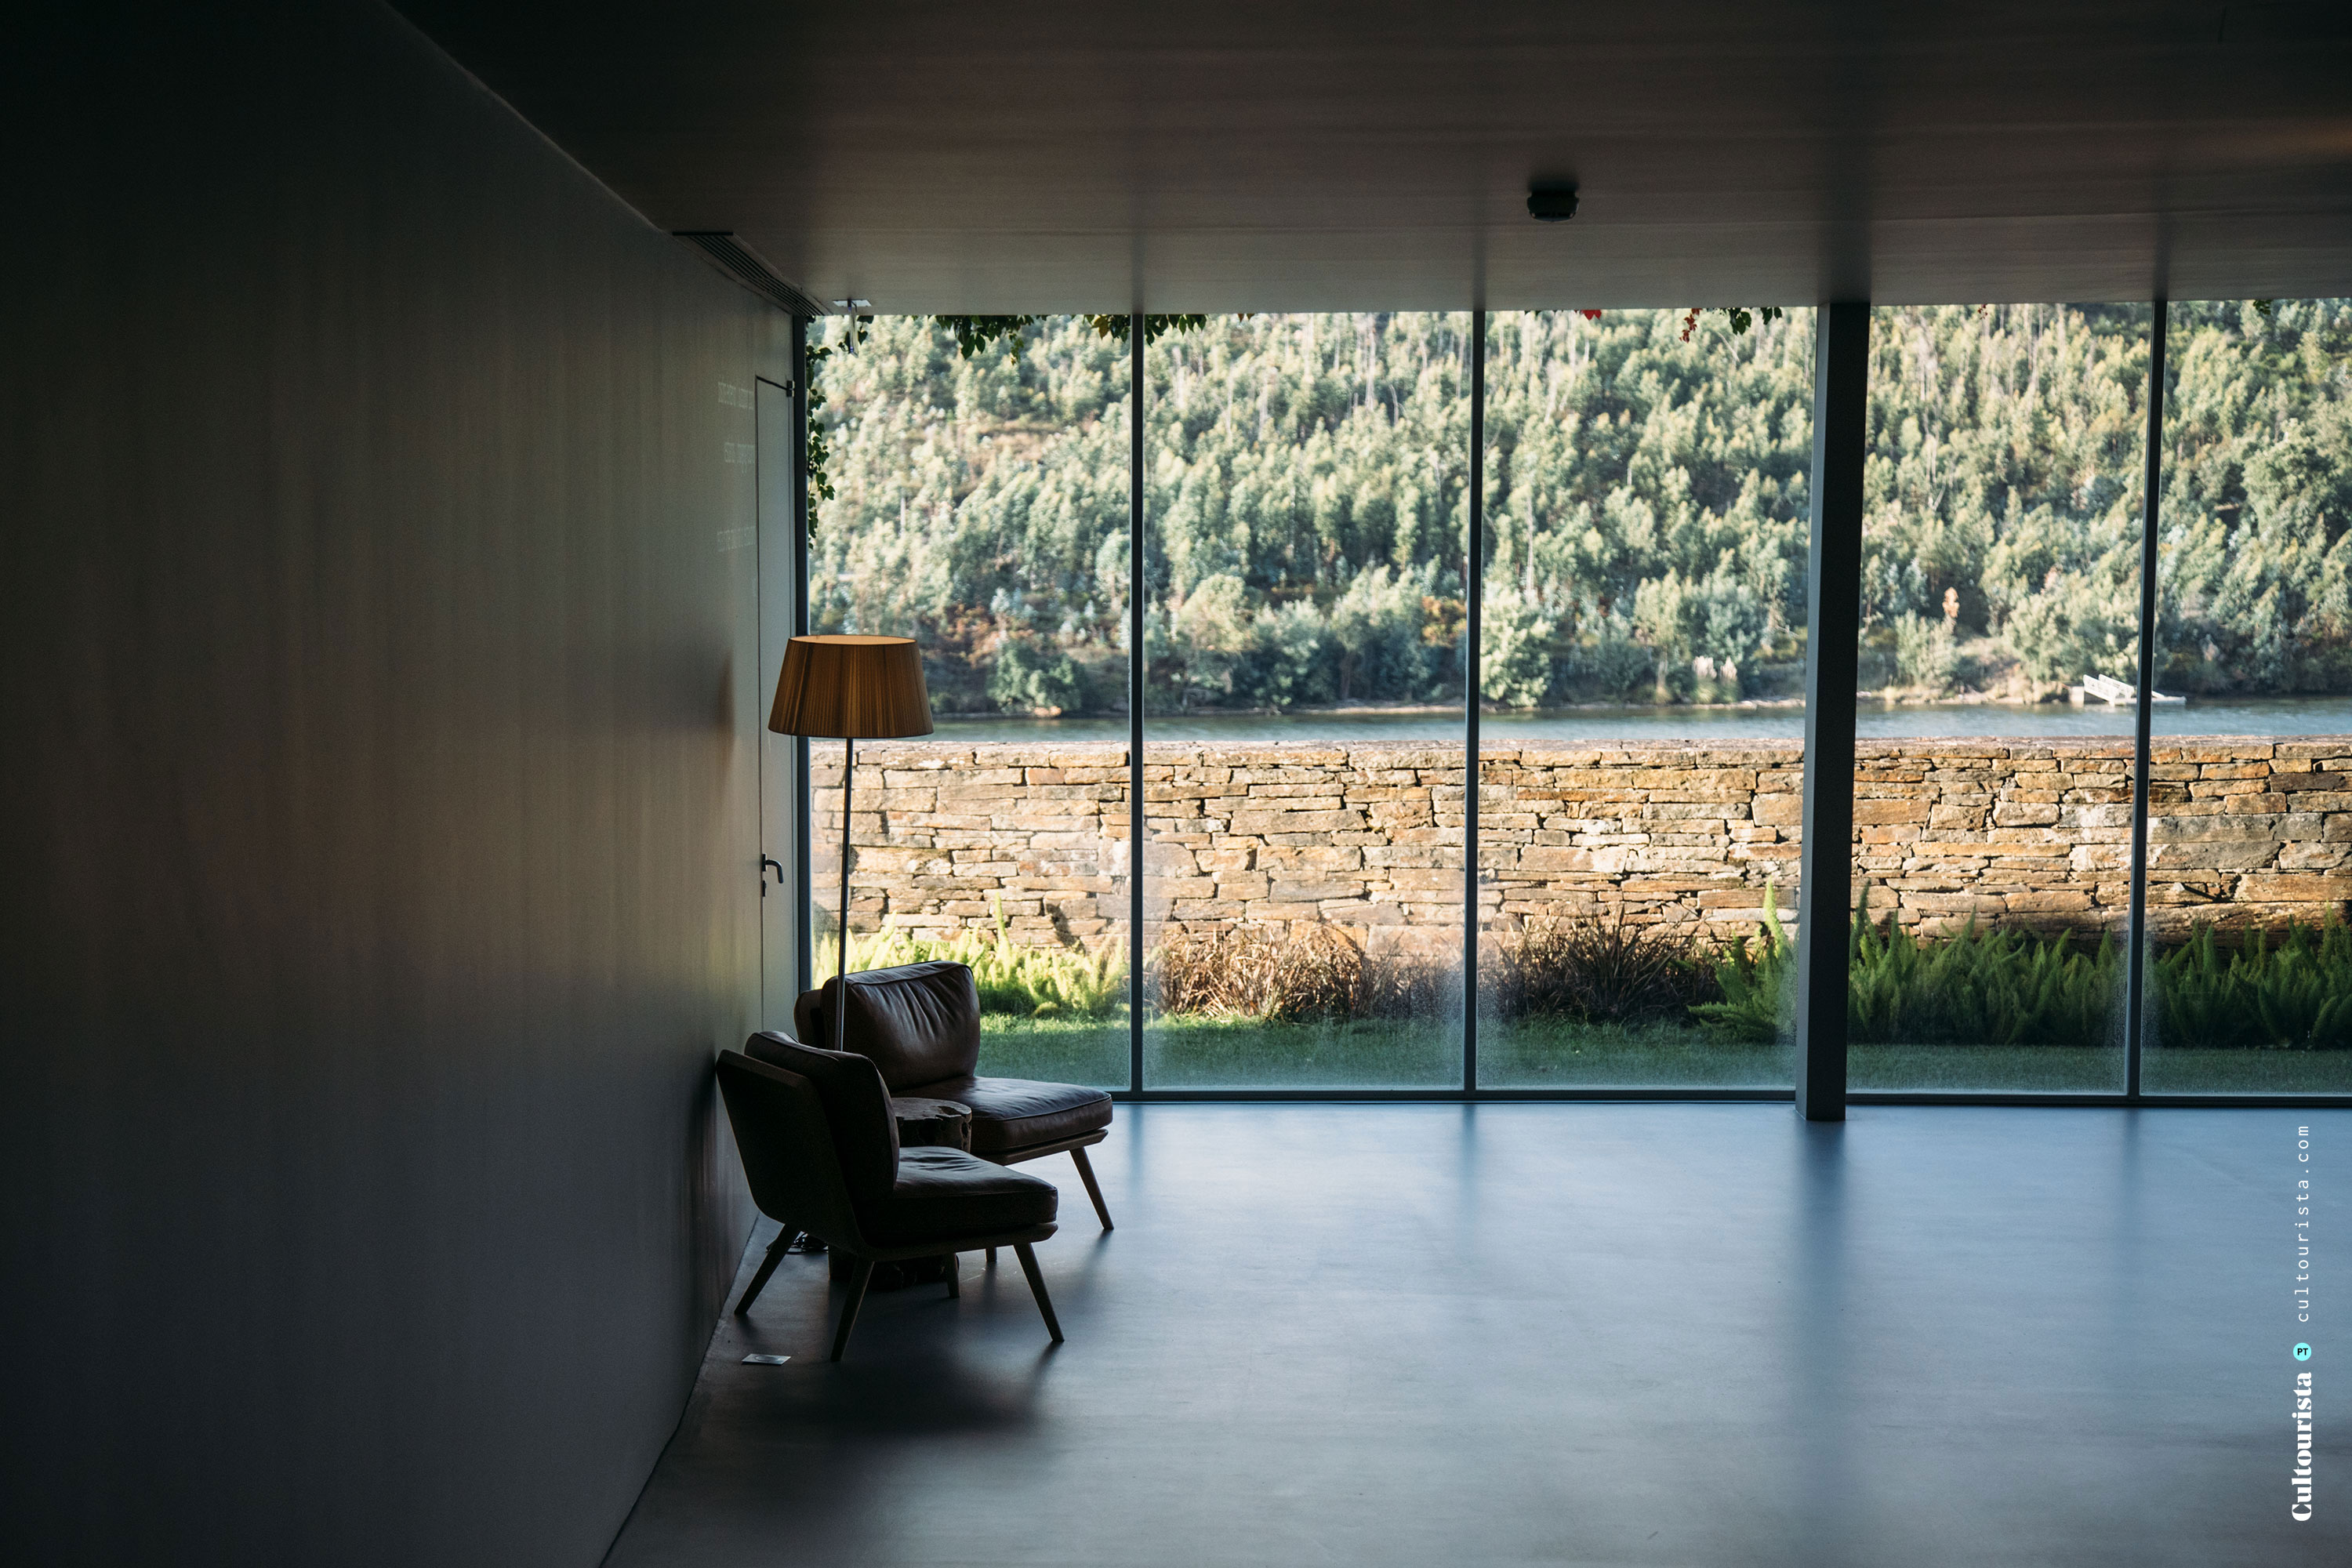 Indoor chairs at the Hotel Douro41 Portugal